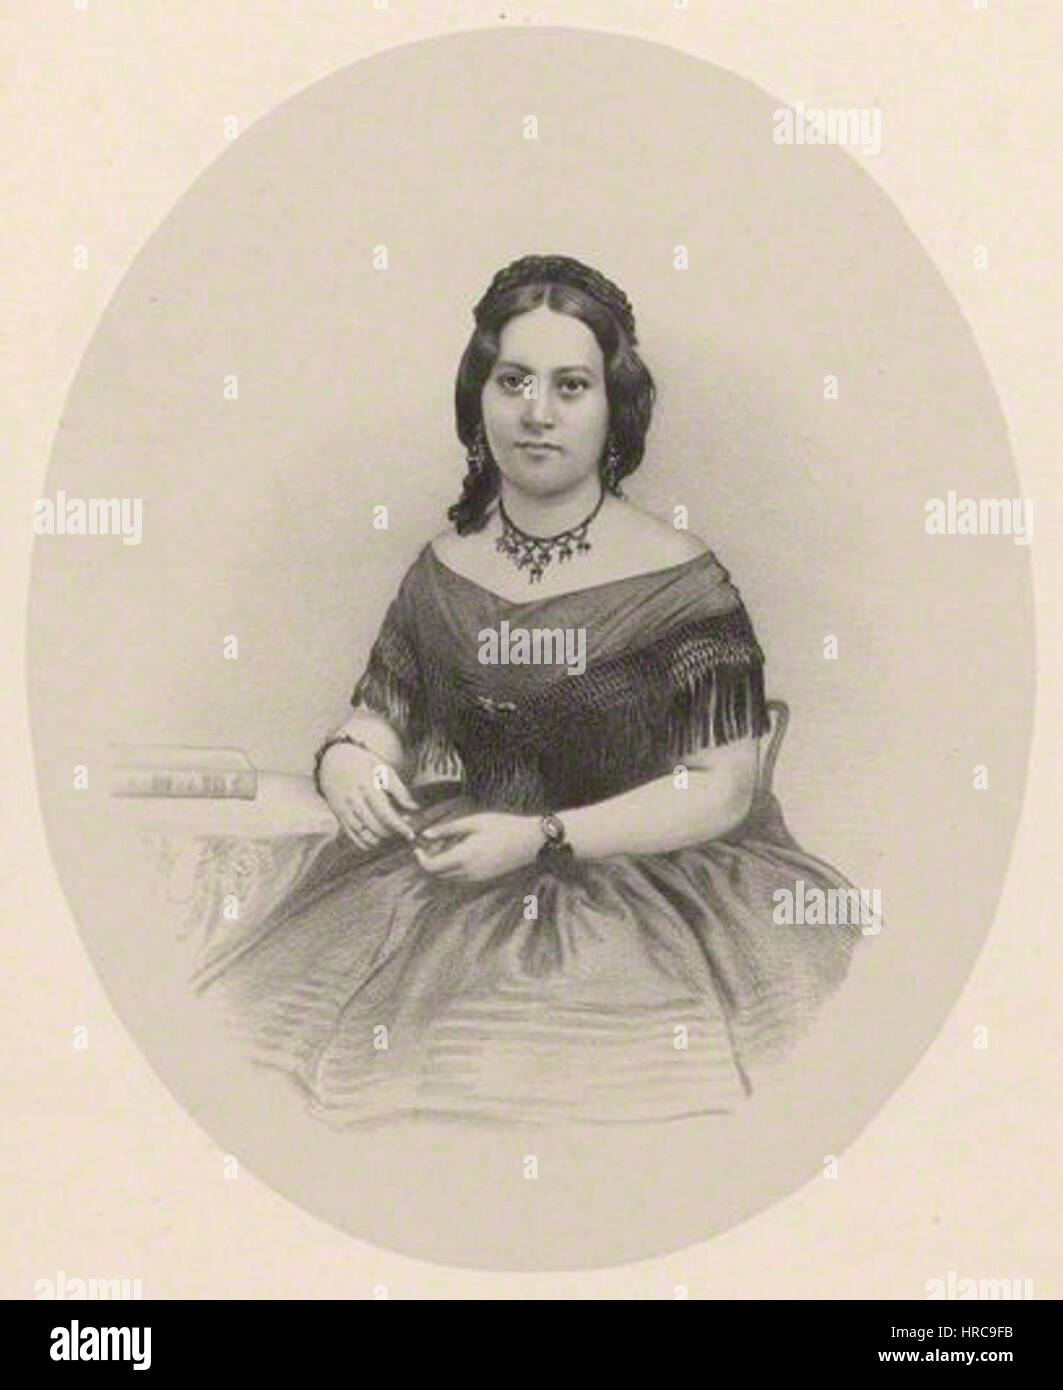 Queen Emma of Hawaii by Richard James Lane, lithograph, circa 1825-1850 - Stock Image